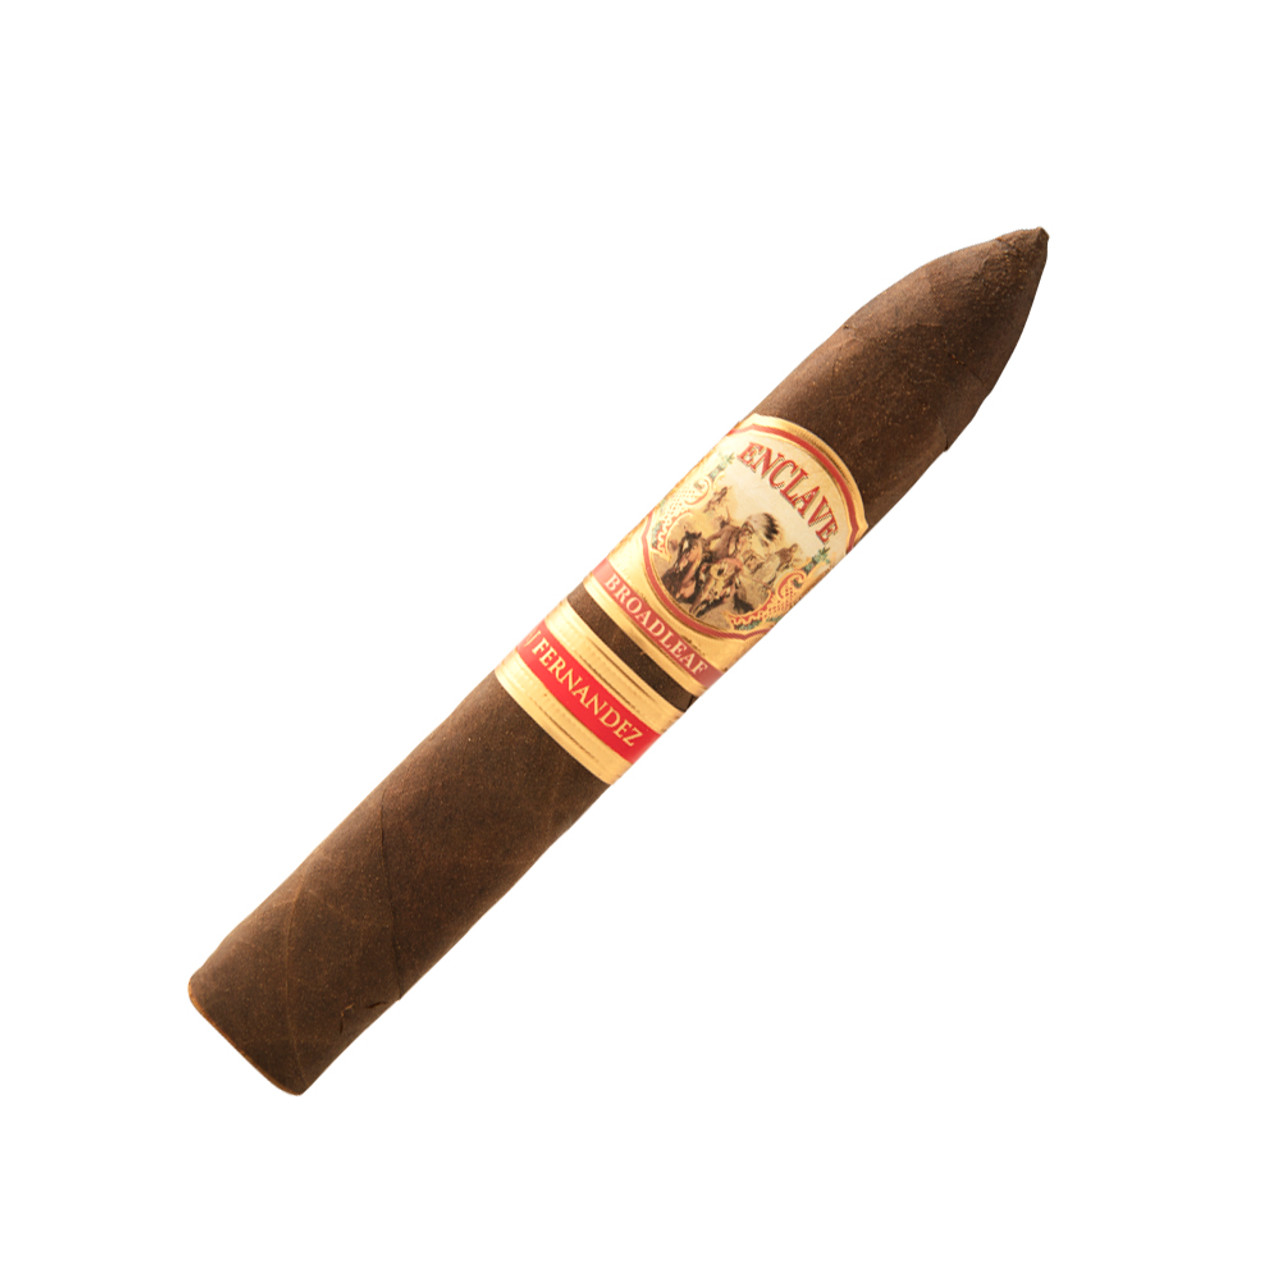 AJ Fernandez Enclave Broadleaf  Belicoso Cigars - 6 x 56 (Box of 20)